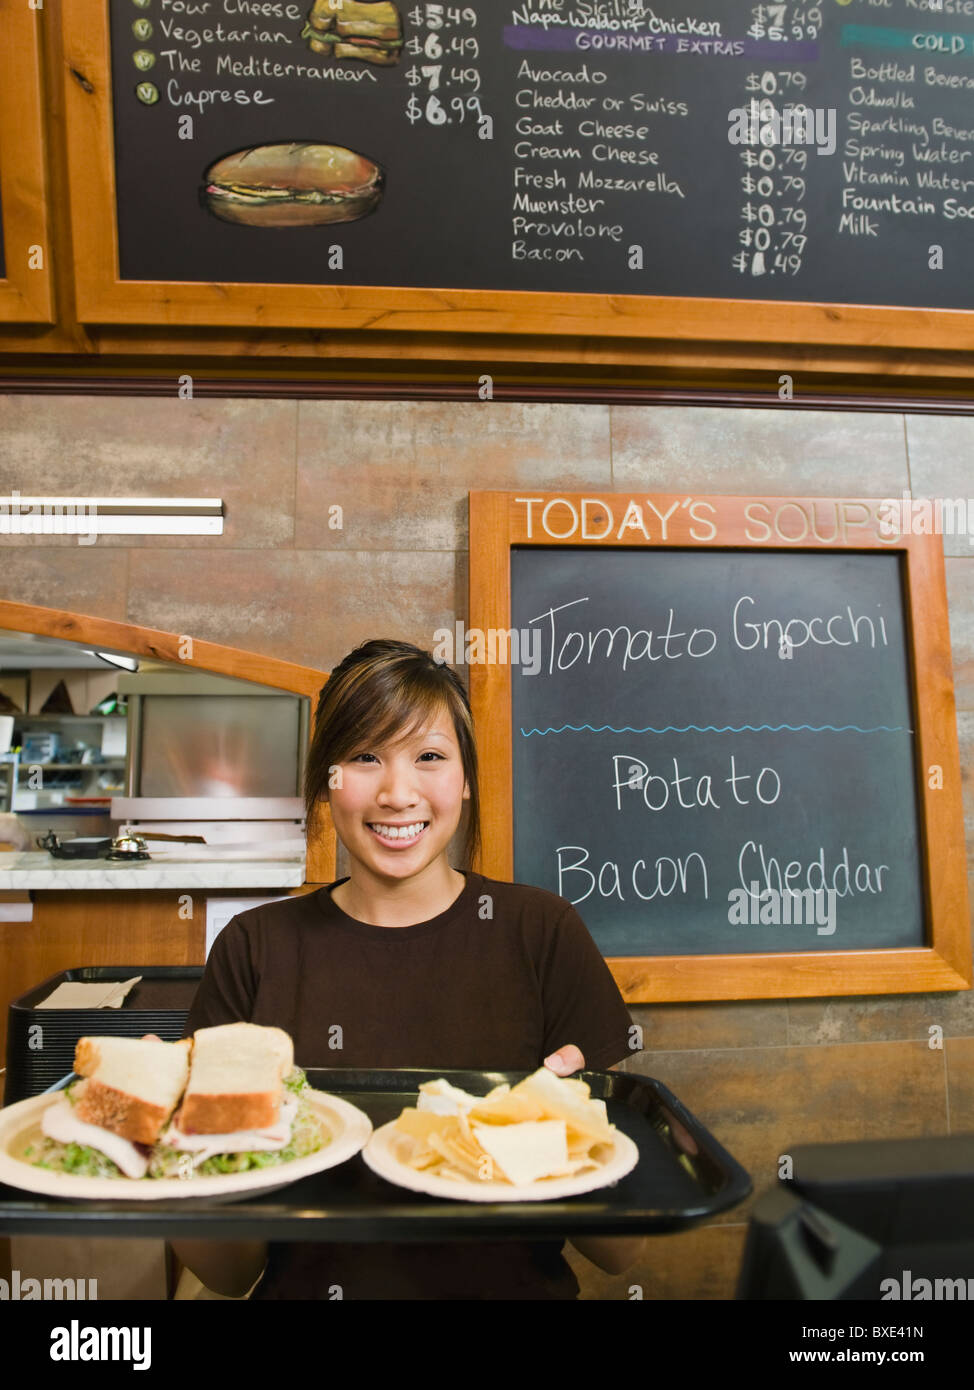 Woman holding tray of food in bakery - Stock Image